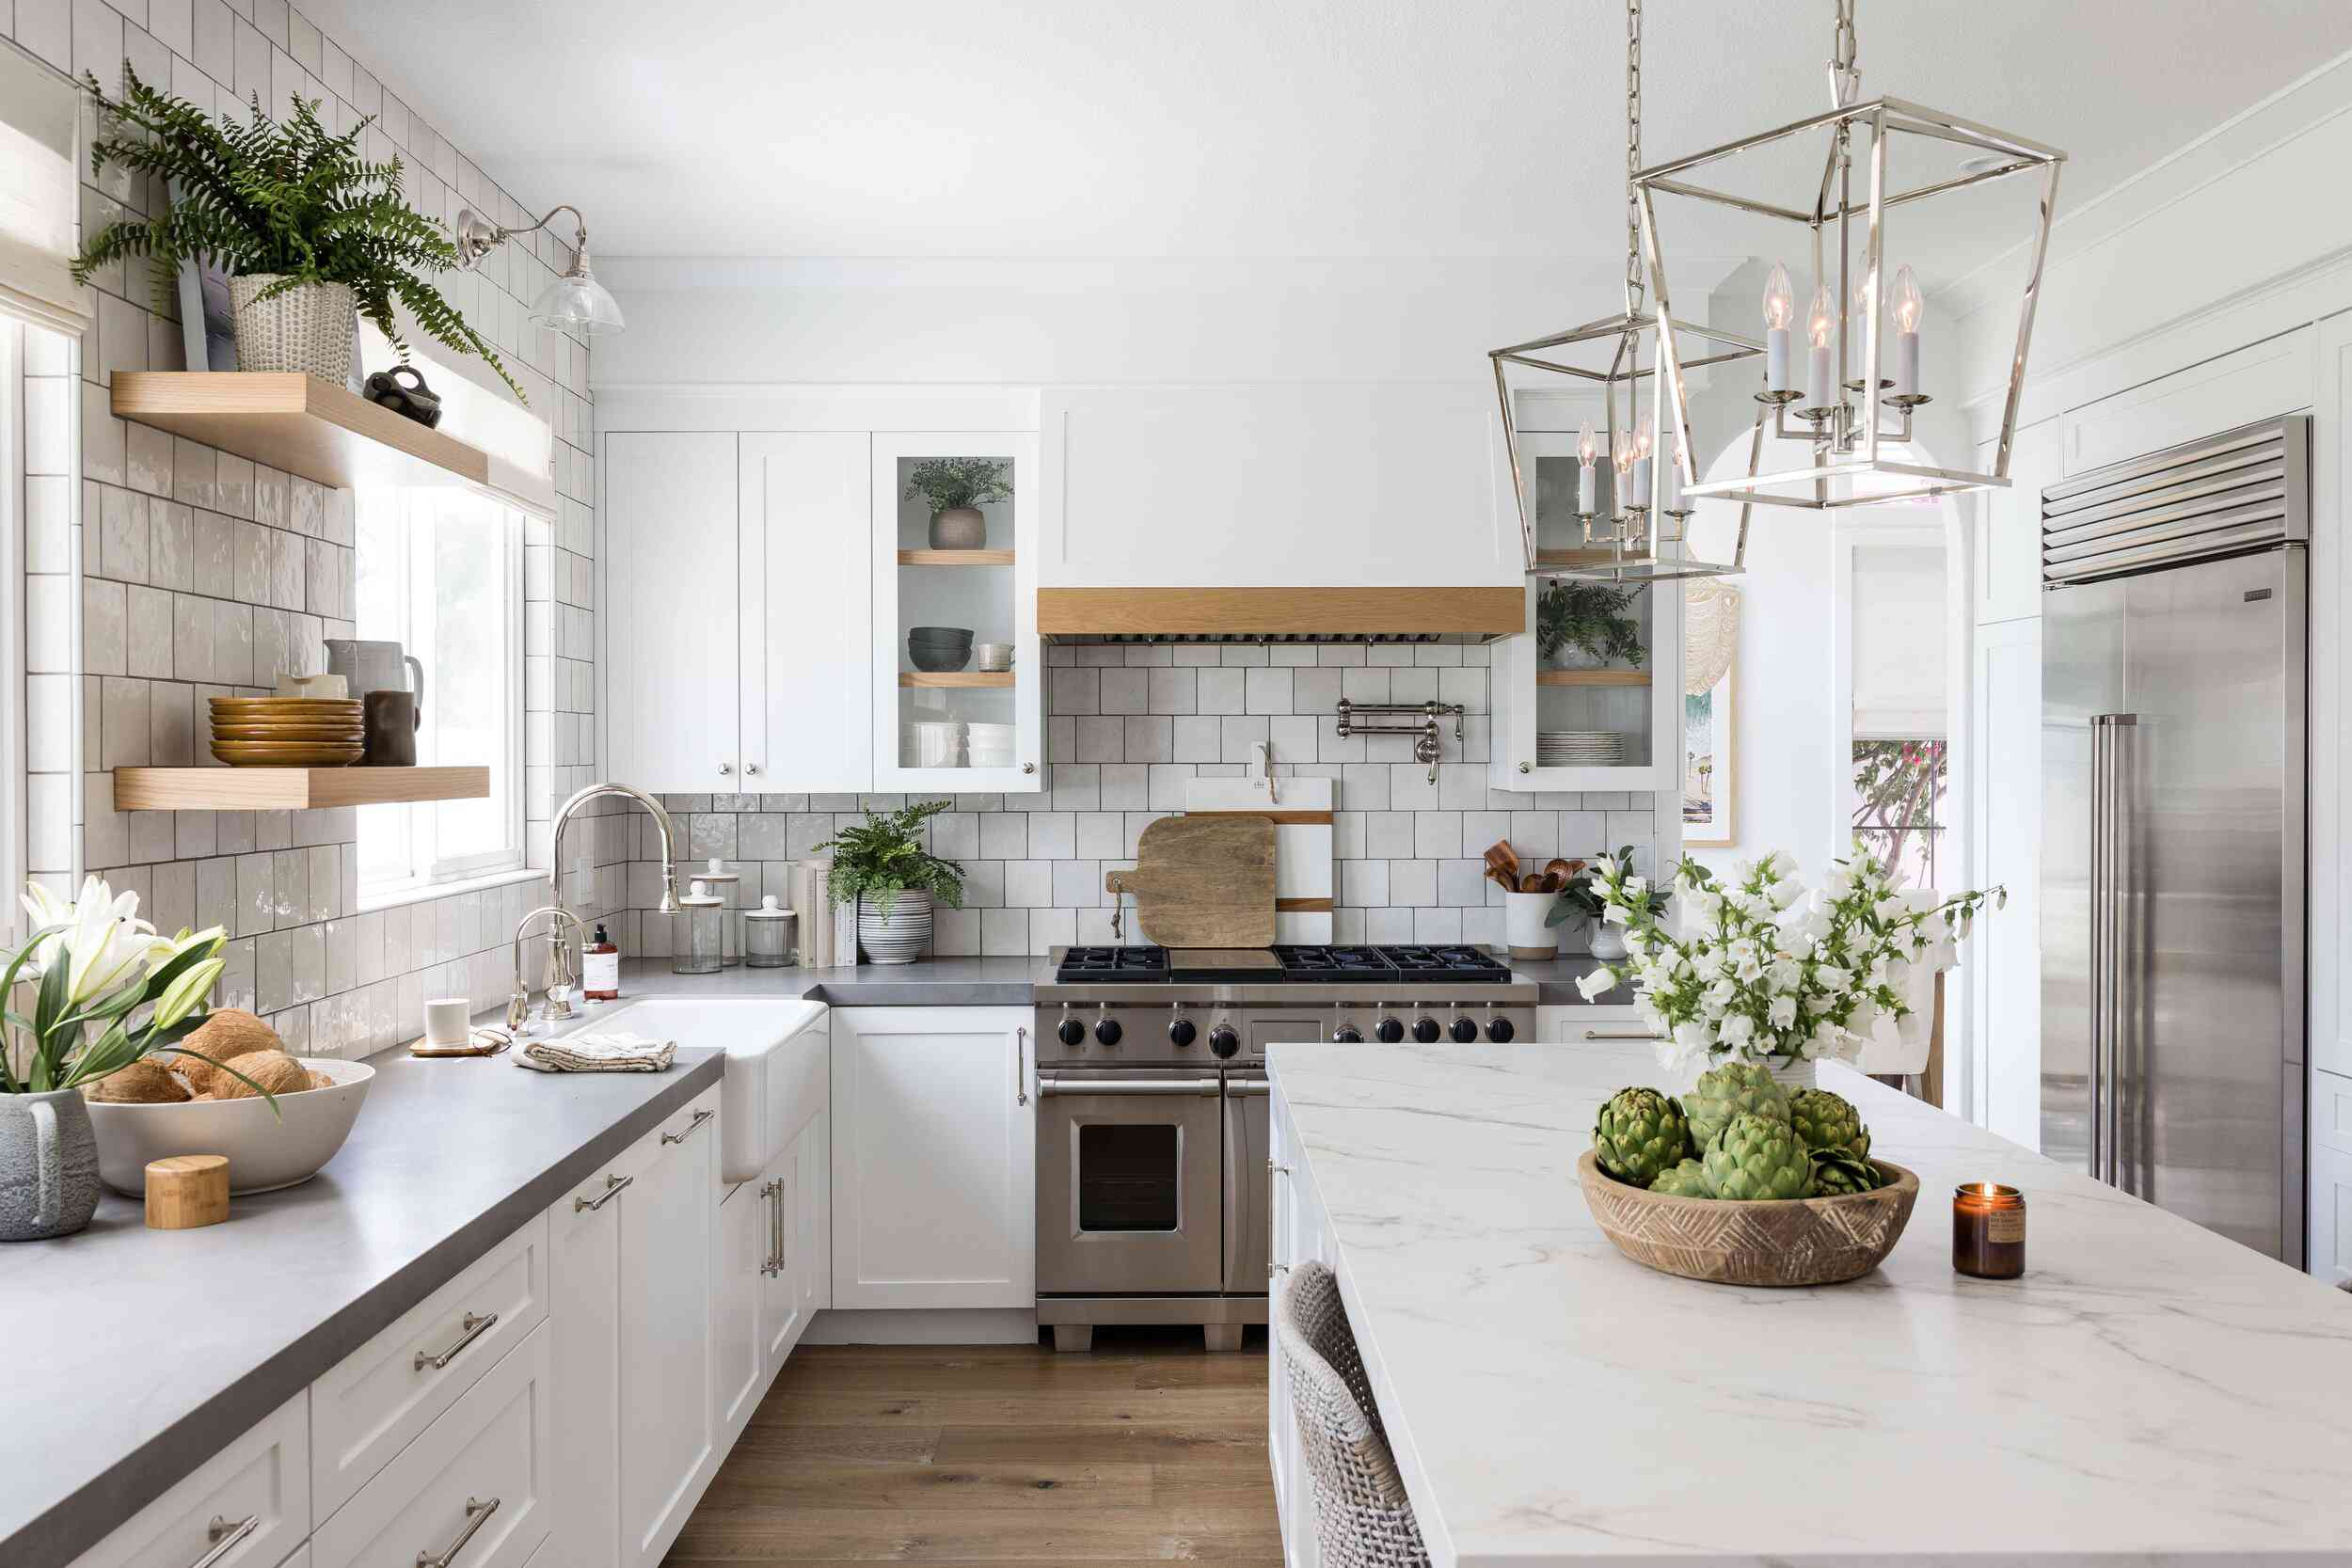 A white kitchen with a backsplash made from white tiles and dark grout